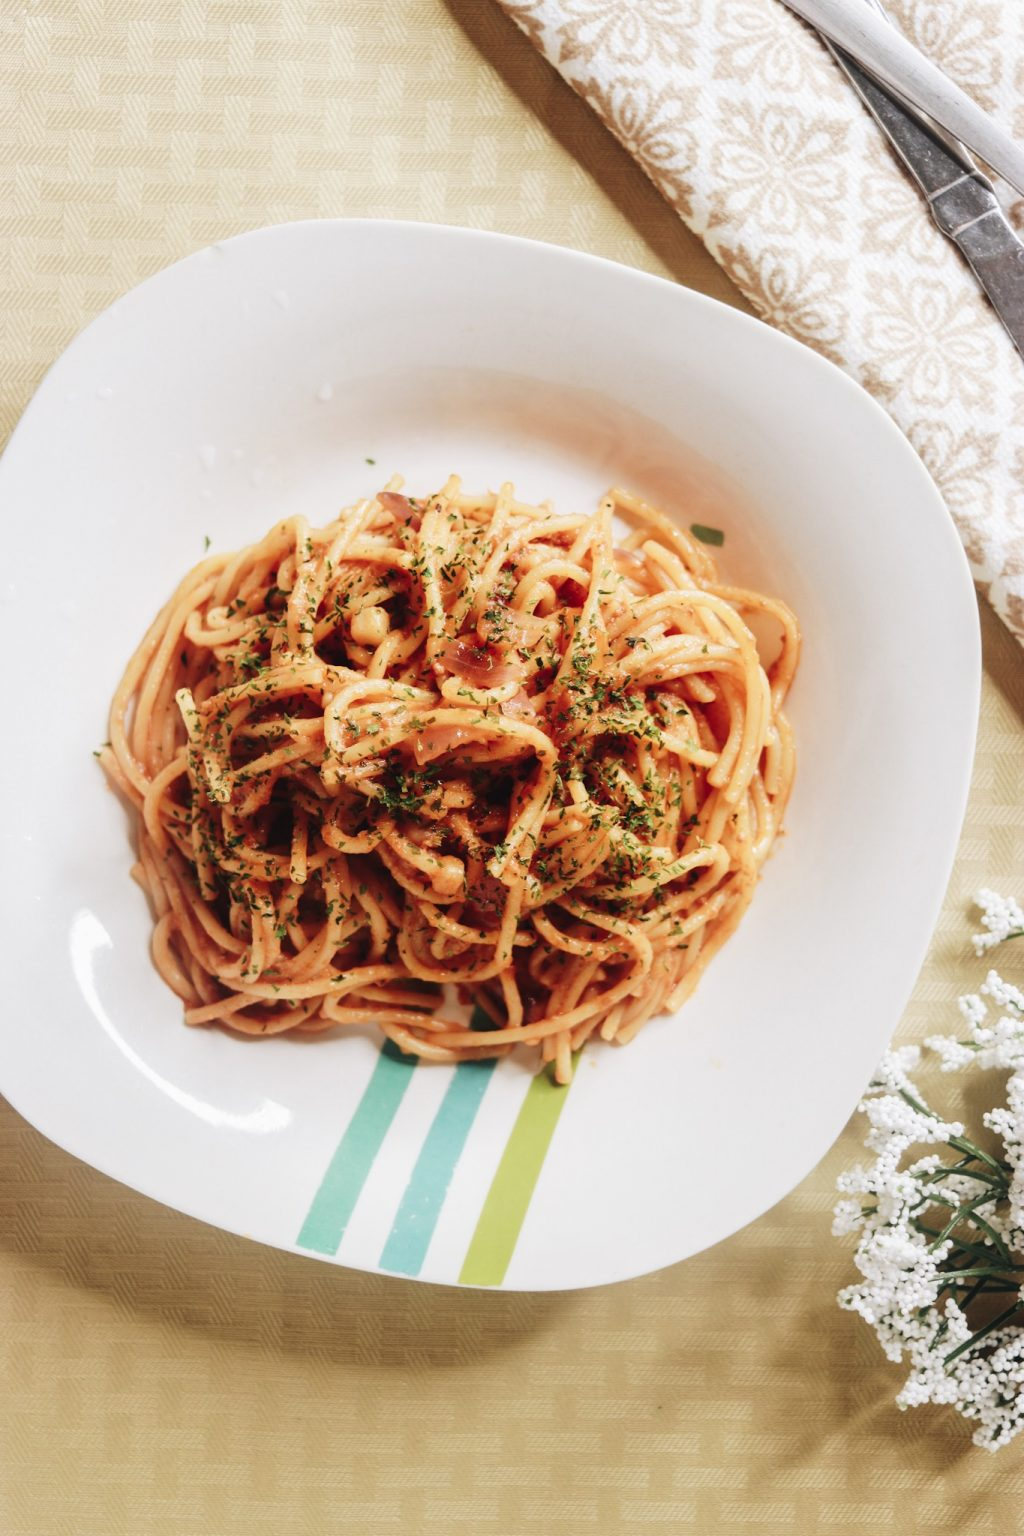 Spaghetti recipe with roast beef harsh 3 1024x1536 - Quick And Easy Spaghetti Recipe With Roast Beef Sauce